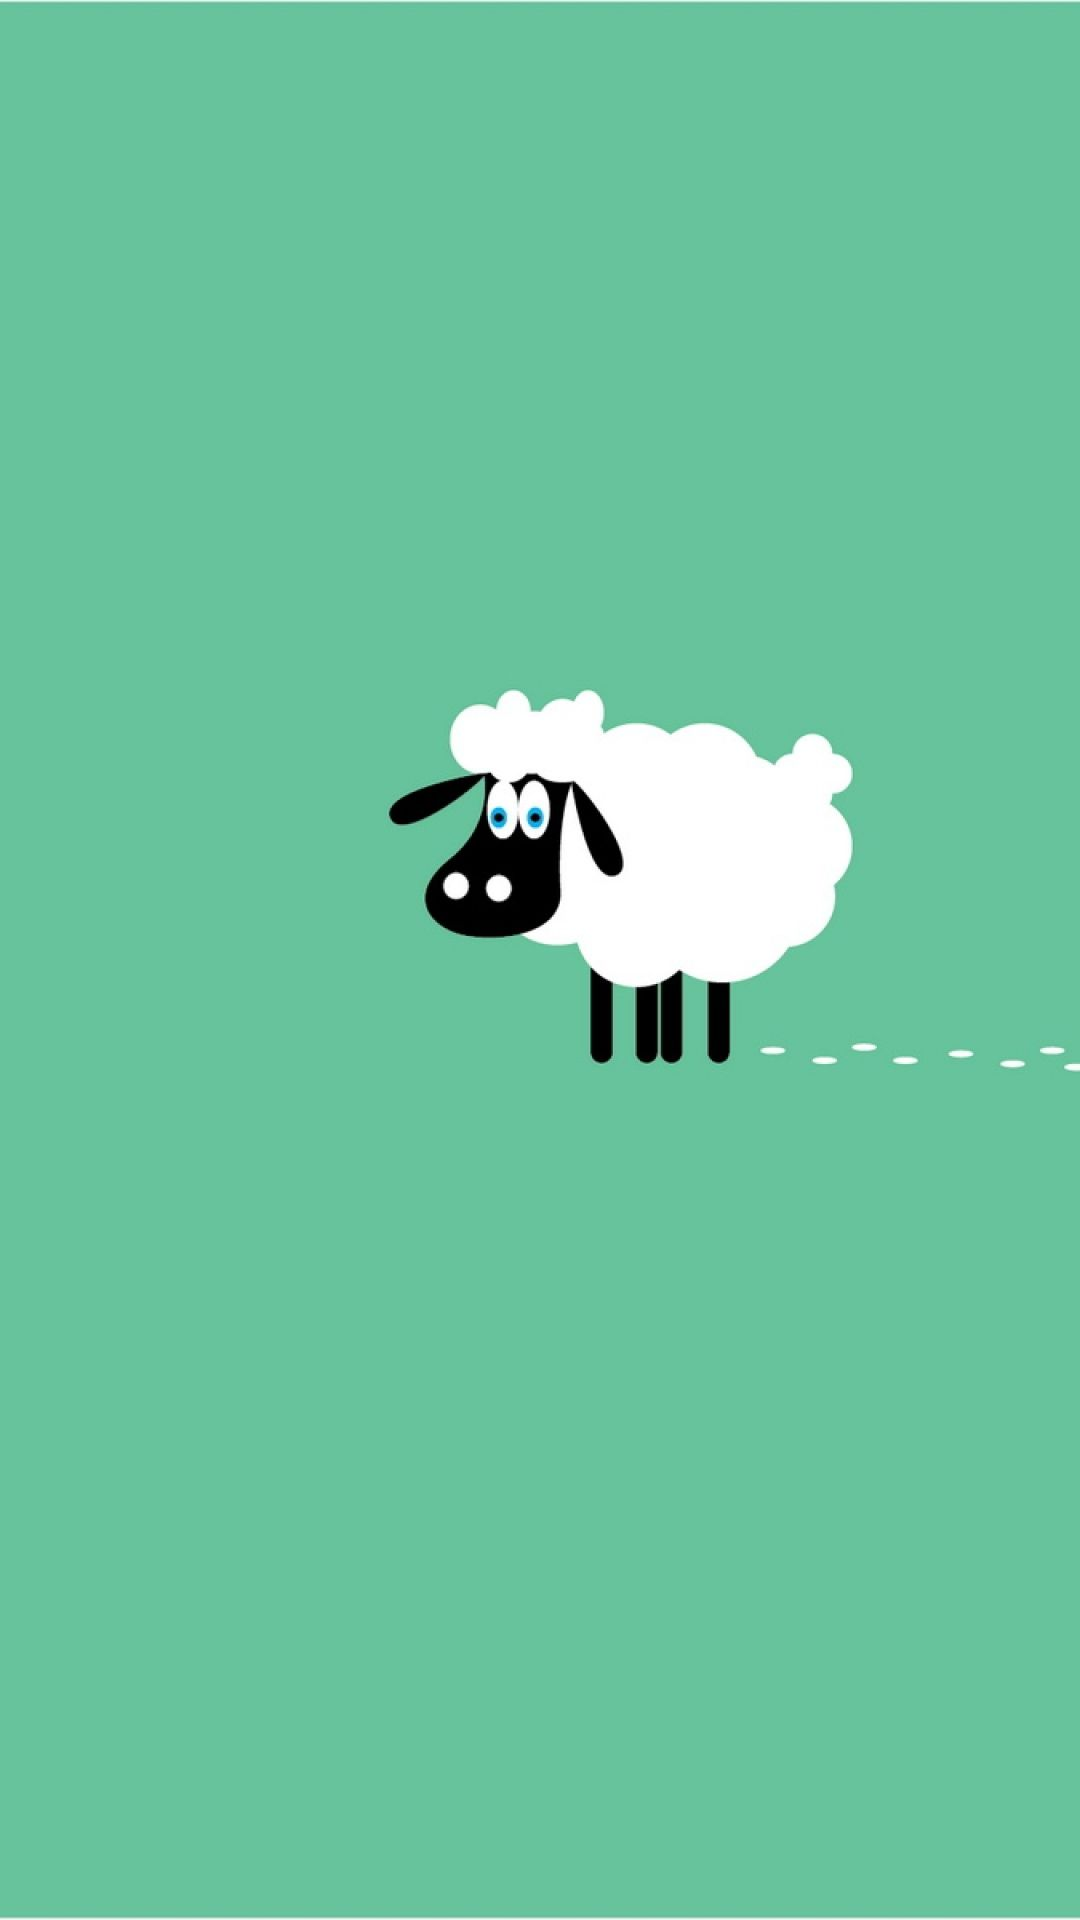 Sheep 9 animals minimalistic wallpapers for iphone - Phone animal wallpapers ...